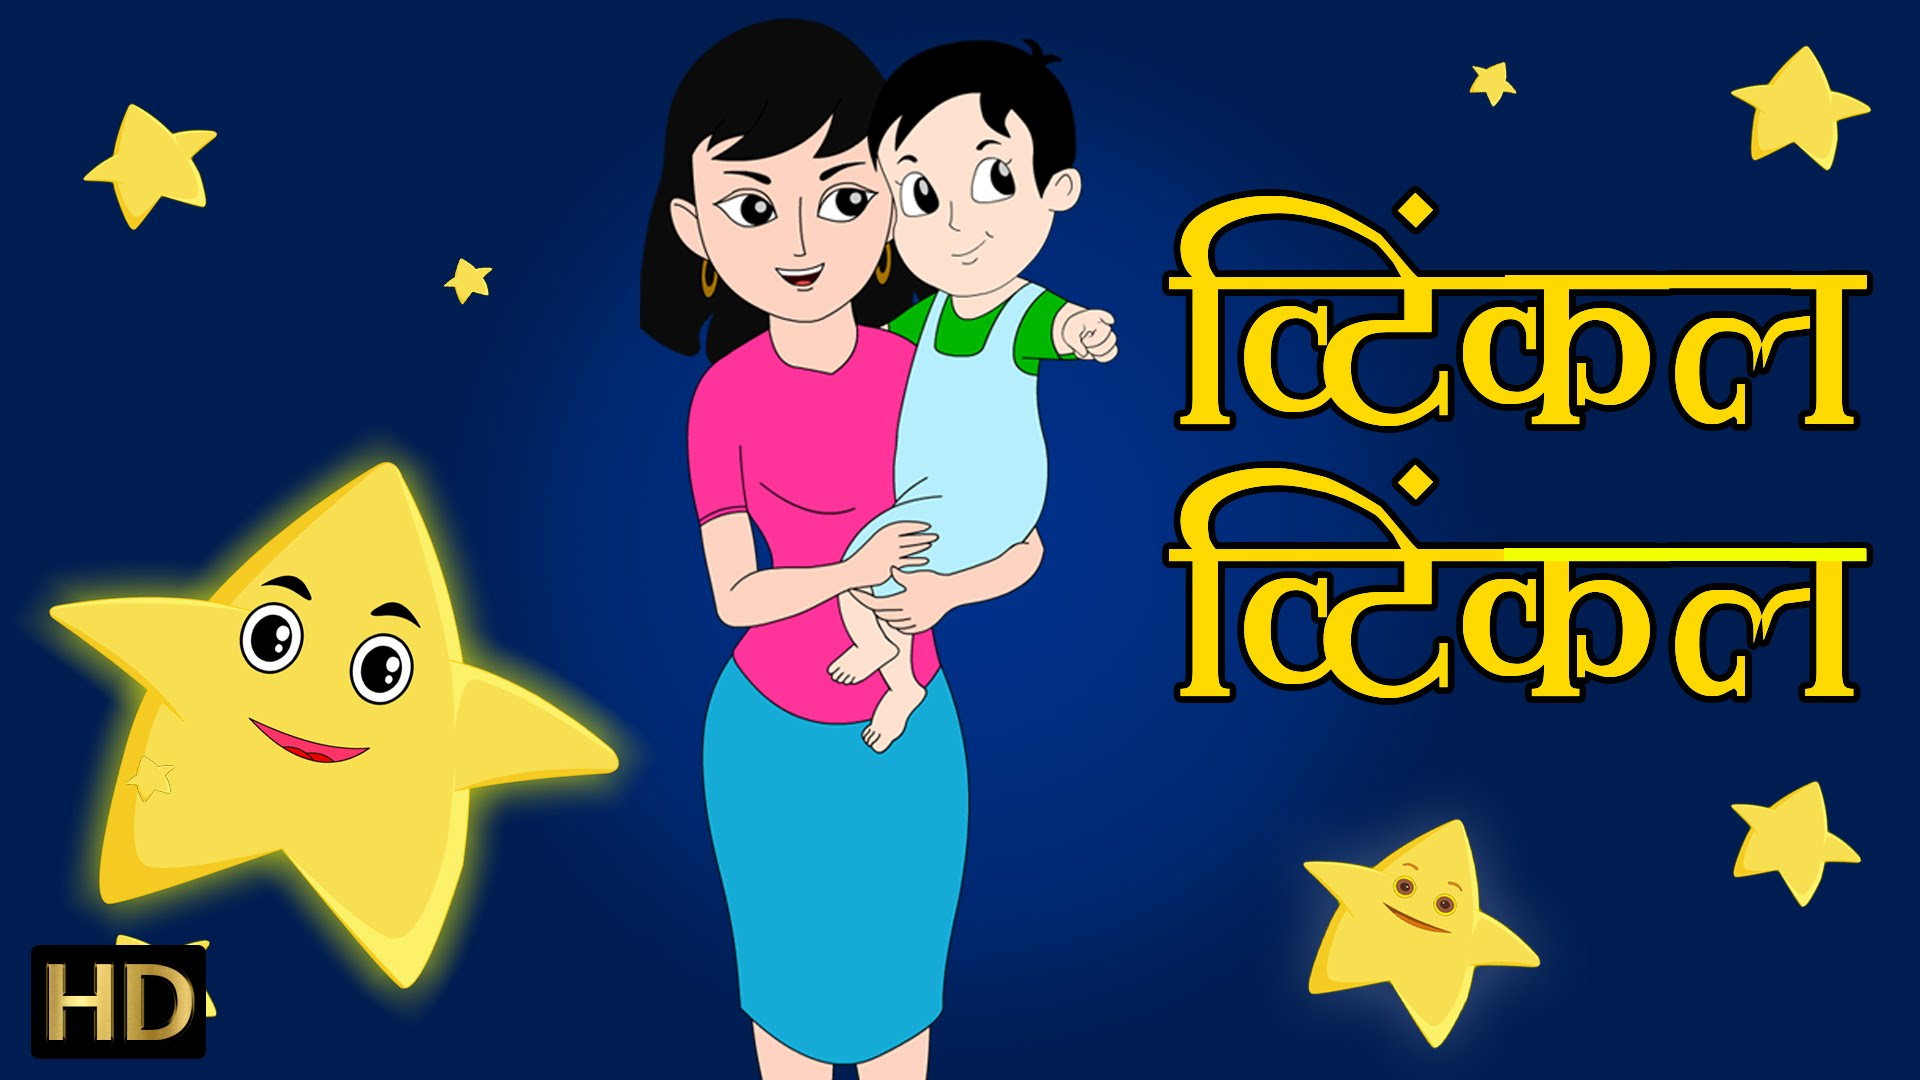 Twinkle Twinkle Little Star (ट्विंकल ट्विंकल लिटिल स्टार) | Hindi Rhymes for Children (HD)